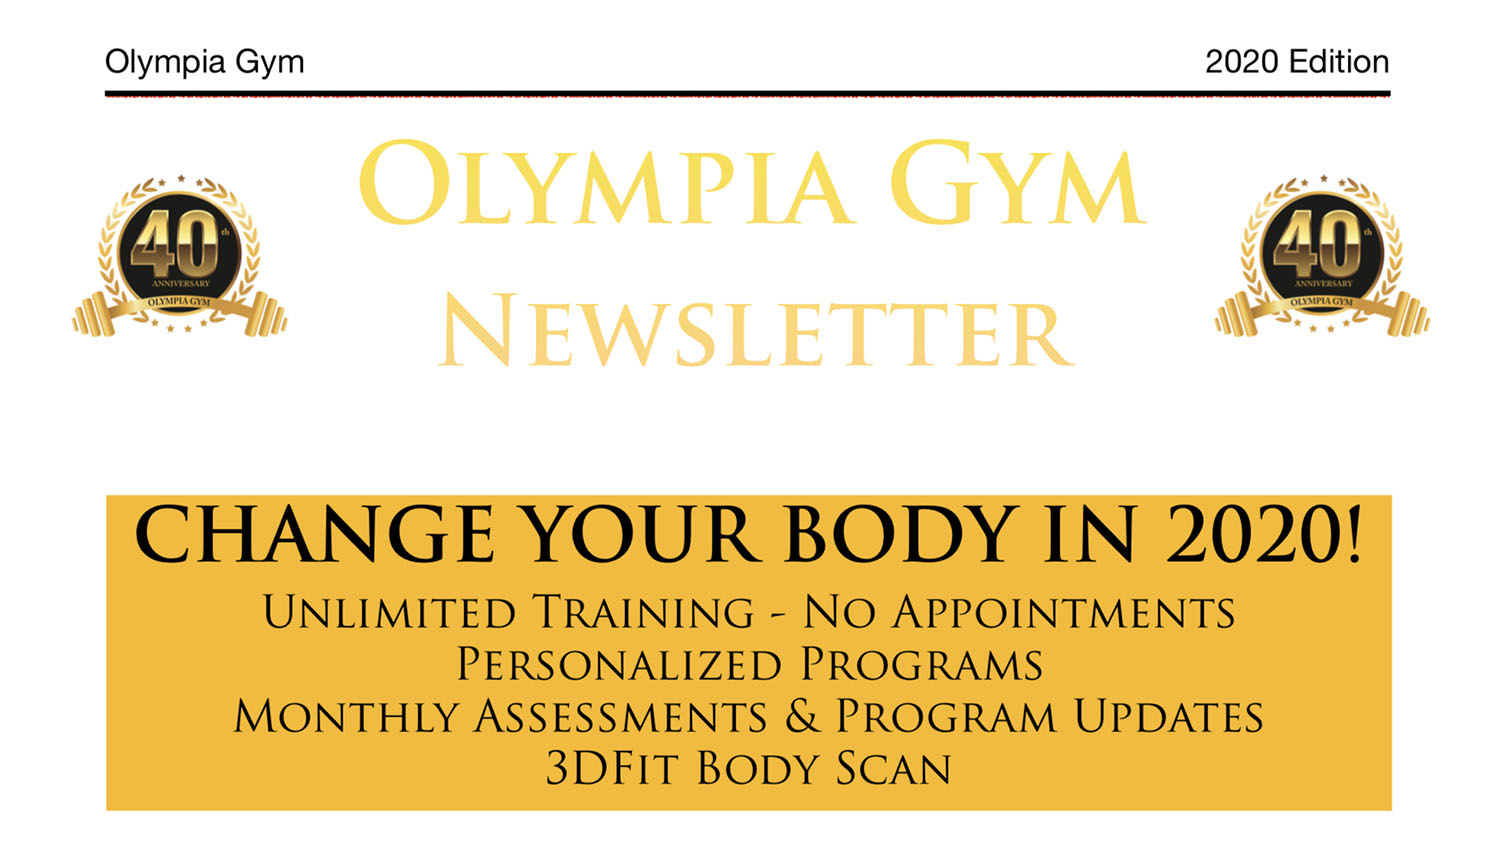 Newsletter - Change Your Body in 2020